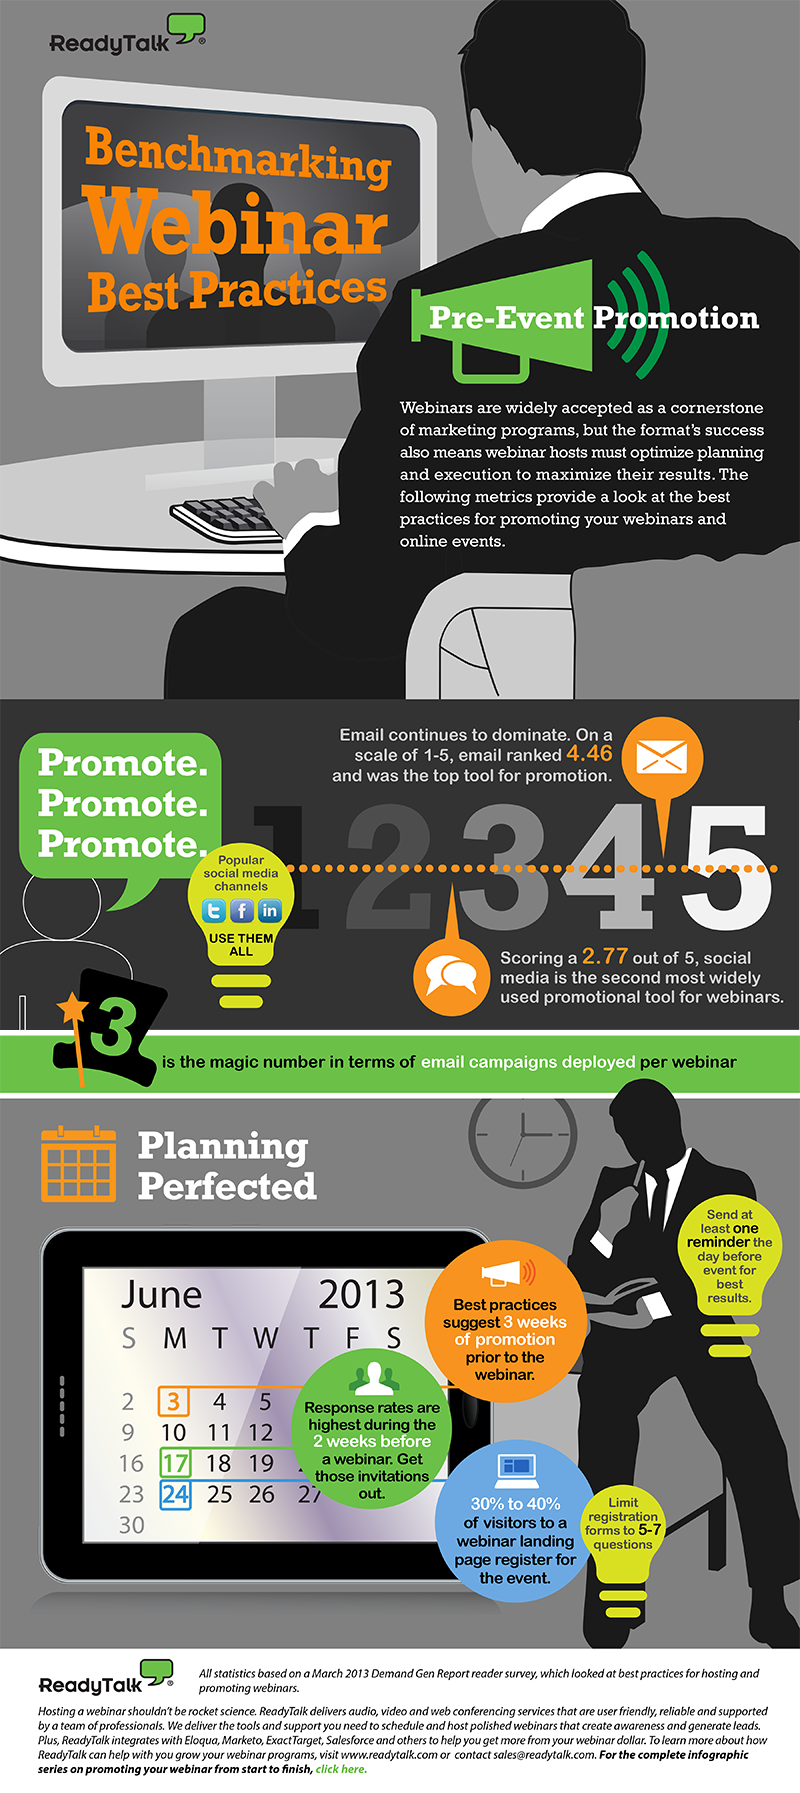 Infographic] Benchmarking Webinar Best Practices: Pre-Event | ReadyTalk